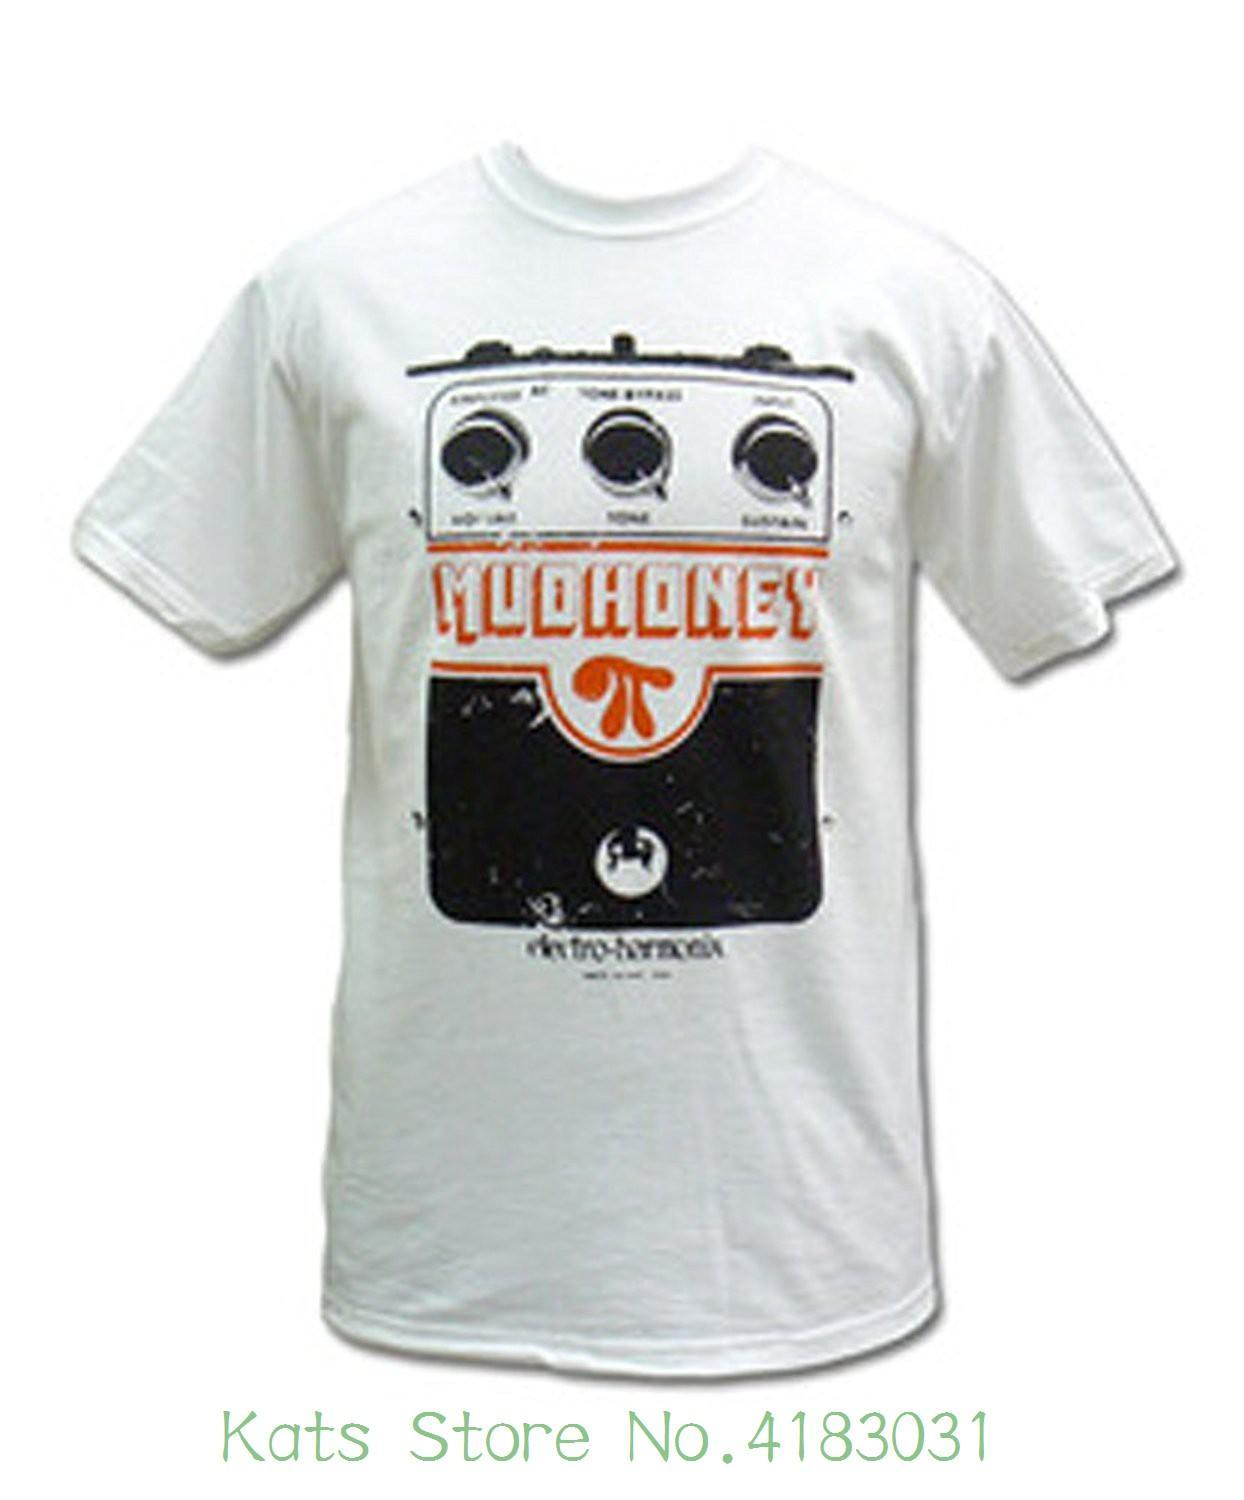 Mudhoney Superfuzz T-shirt de qualité T-shirts hommes Impression manches courtes T-shirt